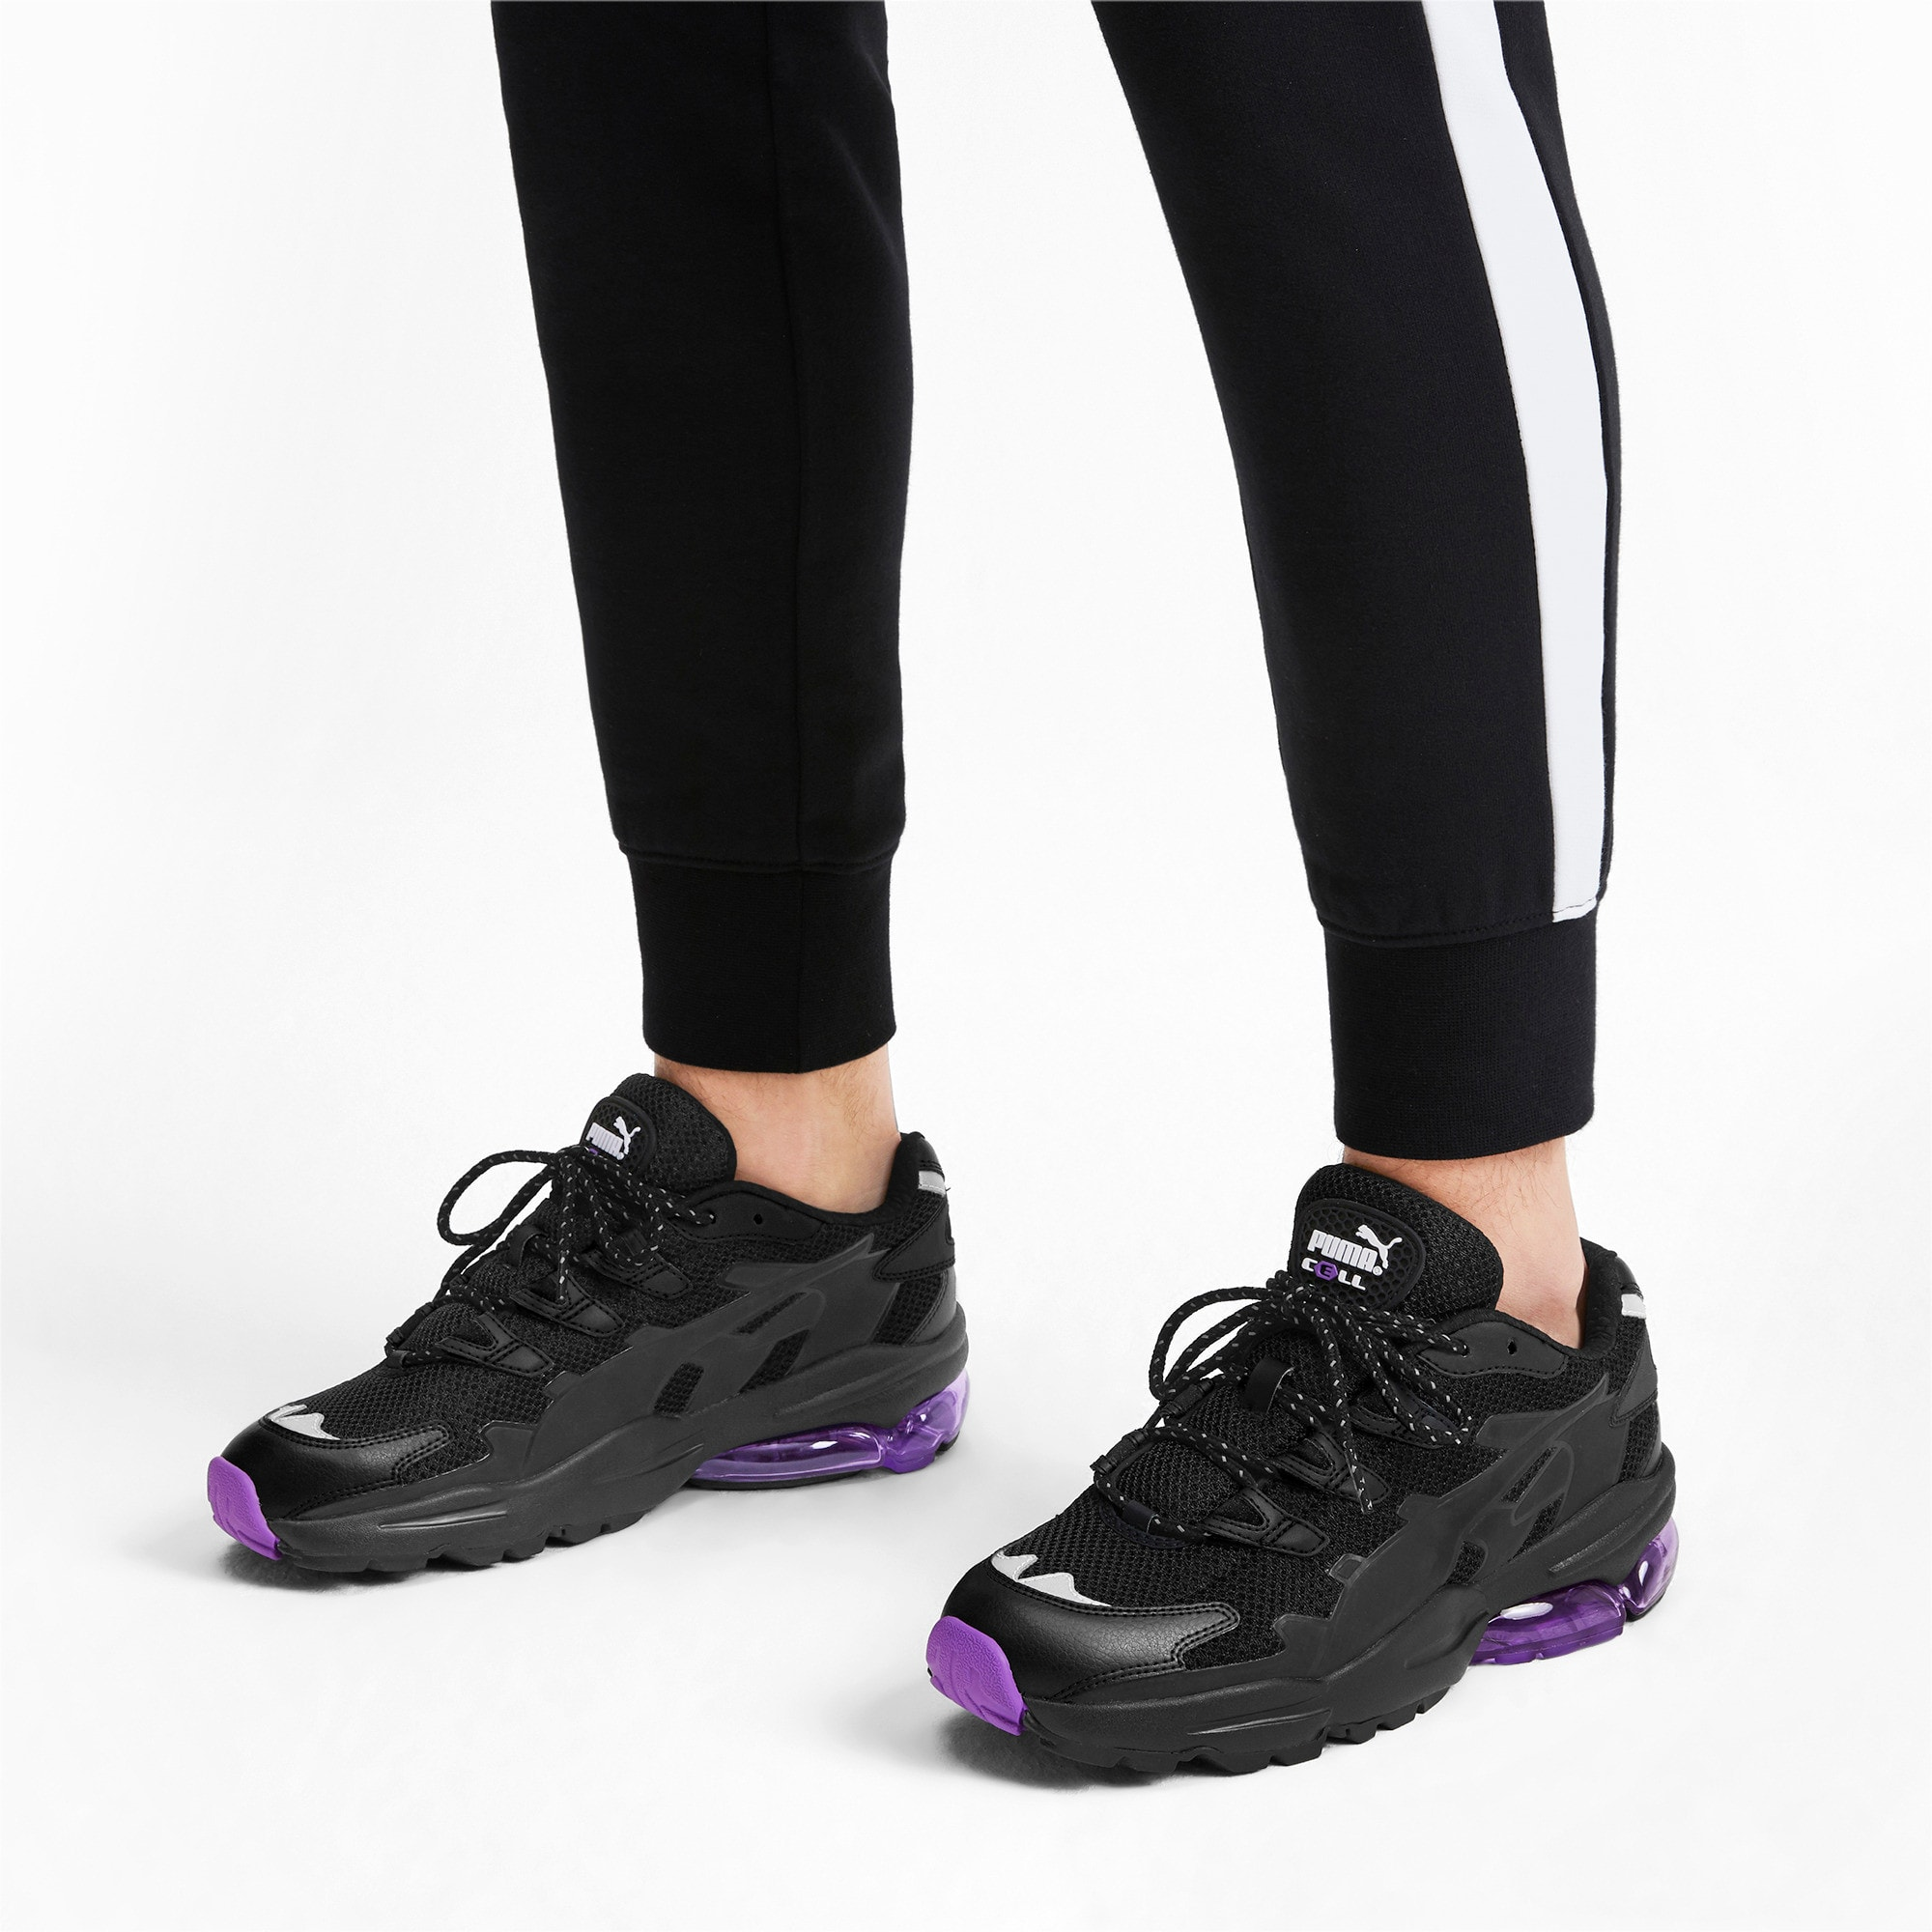 Thumbnail 2 of CELL Alien Kotto sportschoenen, Puma Black-Puma Black, medium